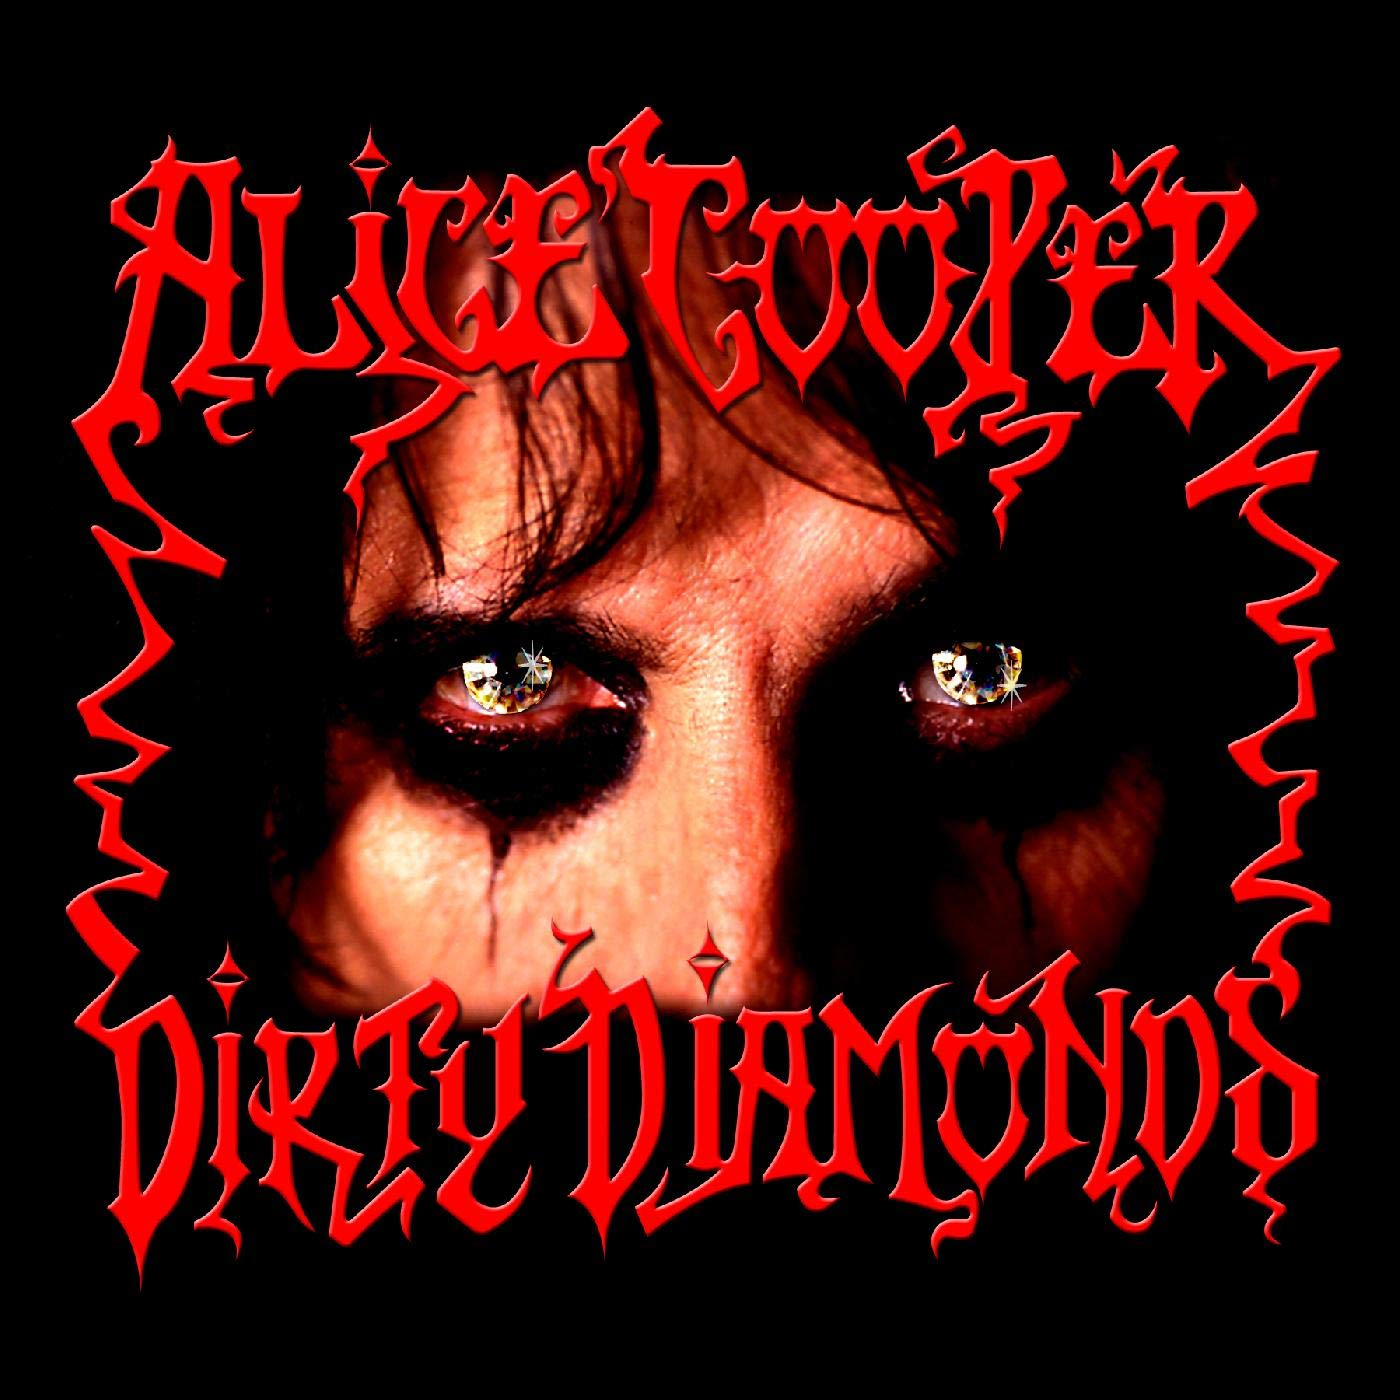 Alice Cooper - Dirty Diamonds [Red Colored Vinyl]